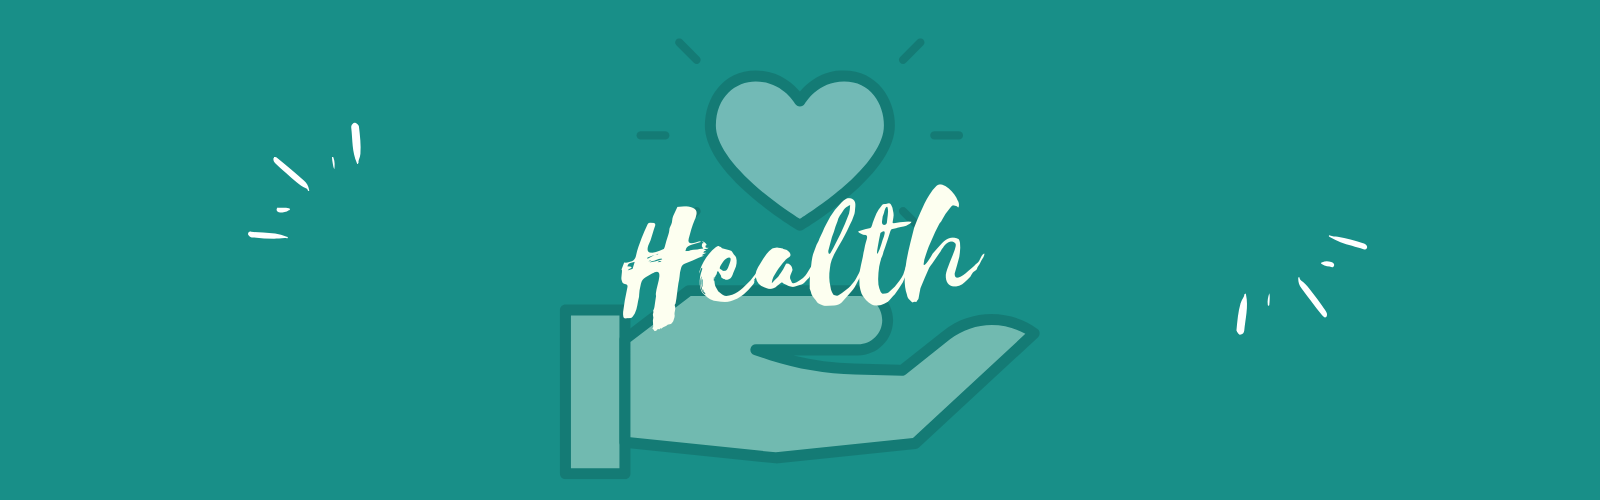 Healthy Results Blog — Health Section Banner